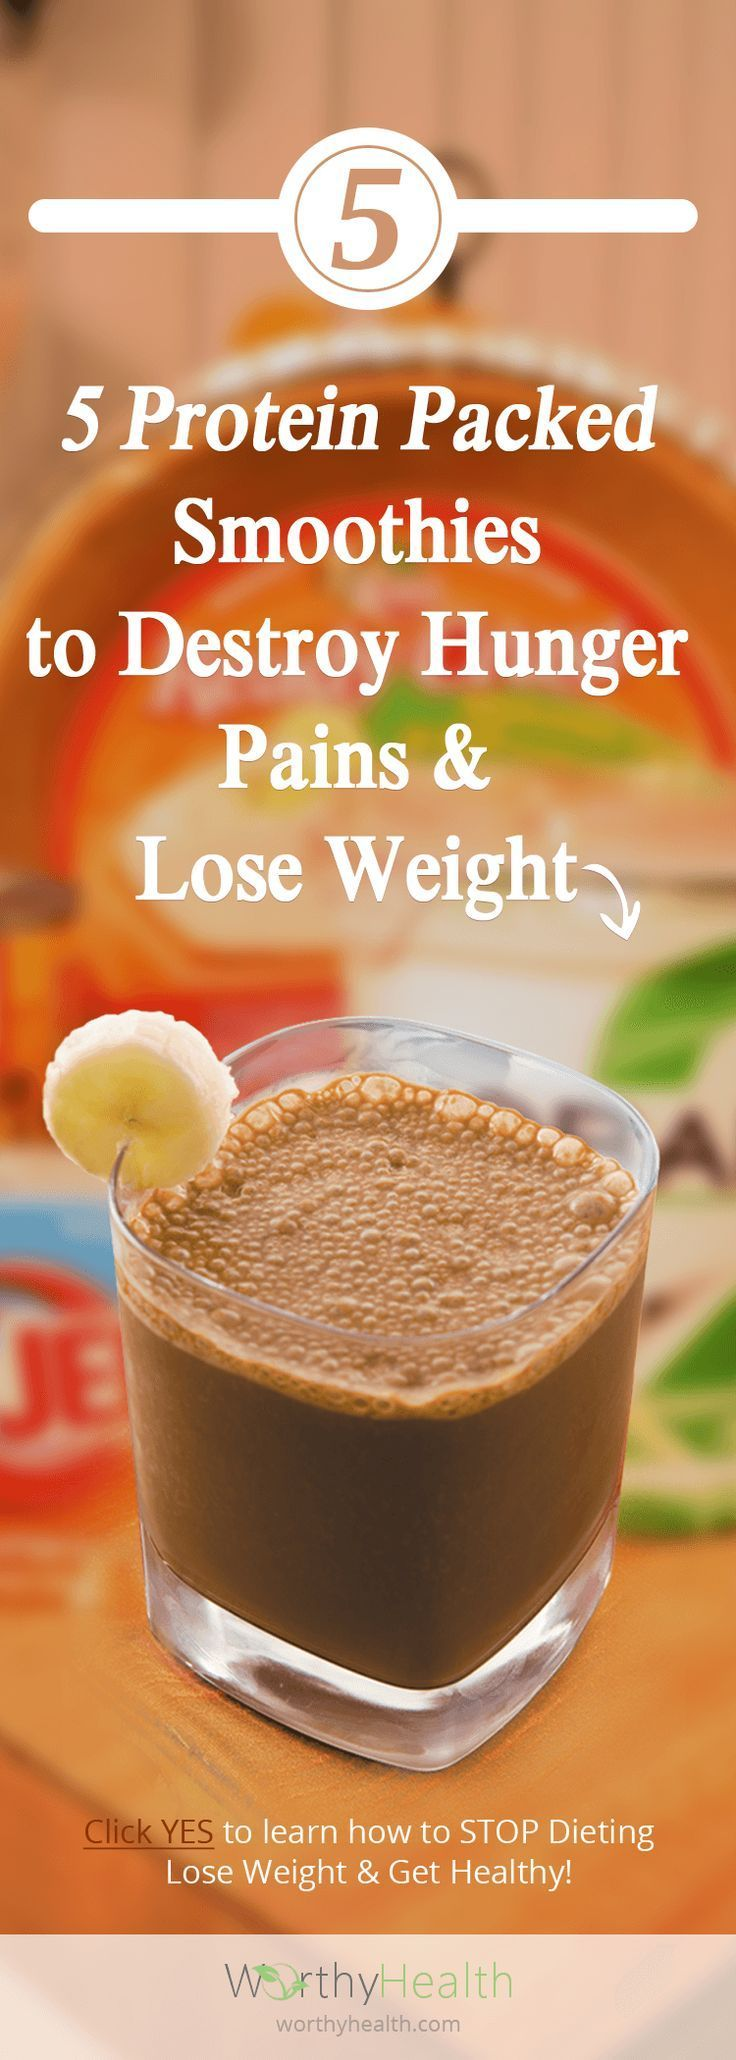 Lose weight with protein smoothies